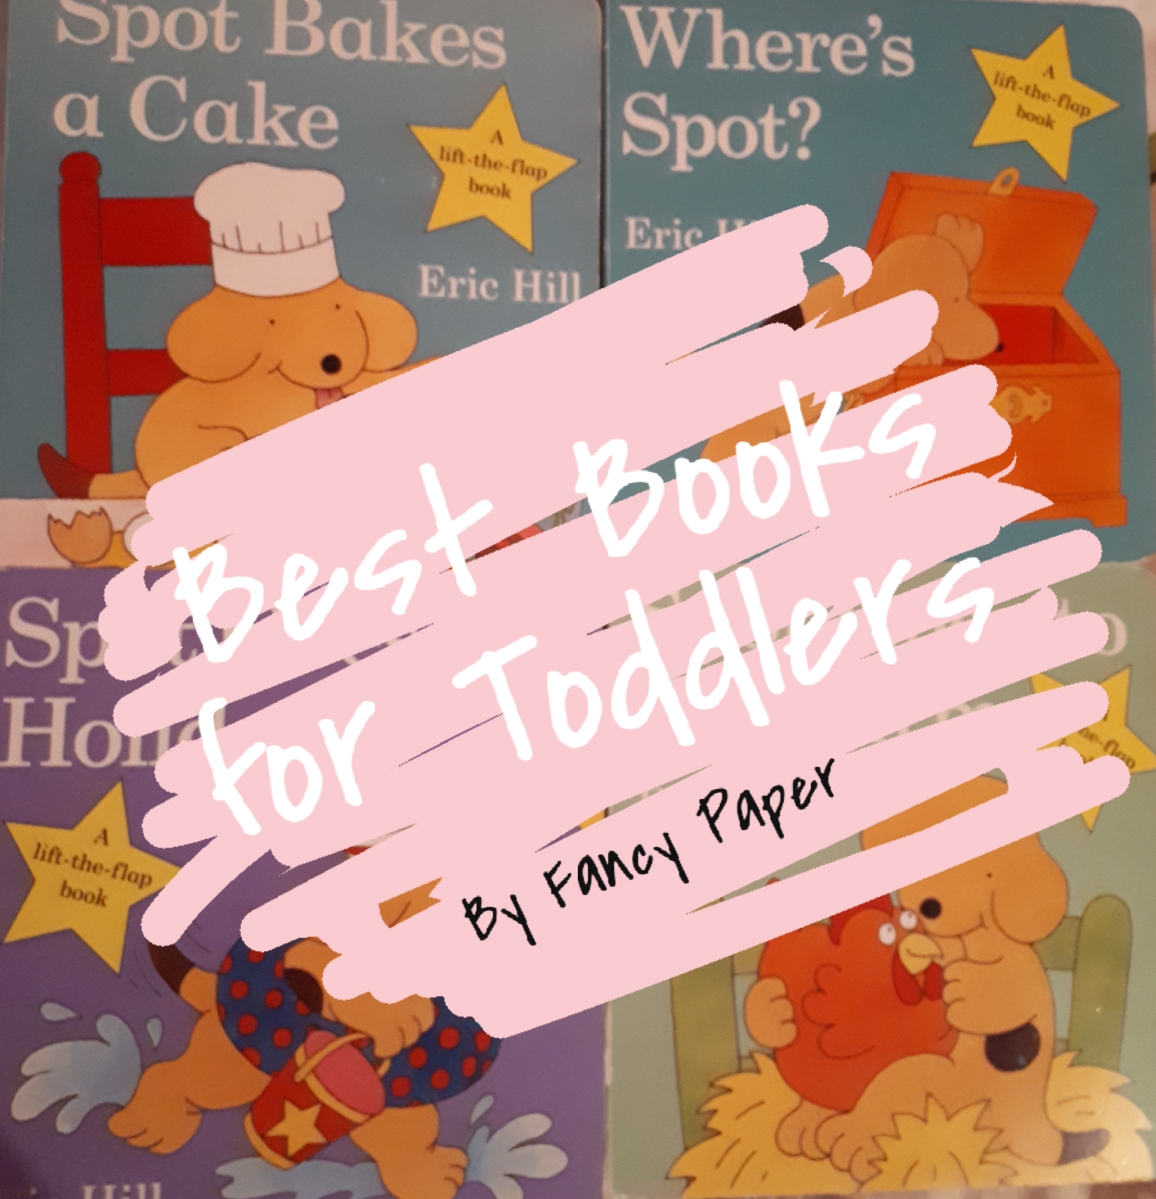 Best Books for Toddlers on World Book Day